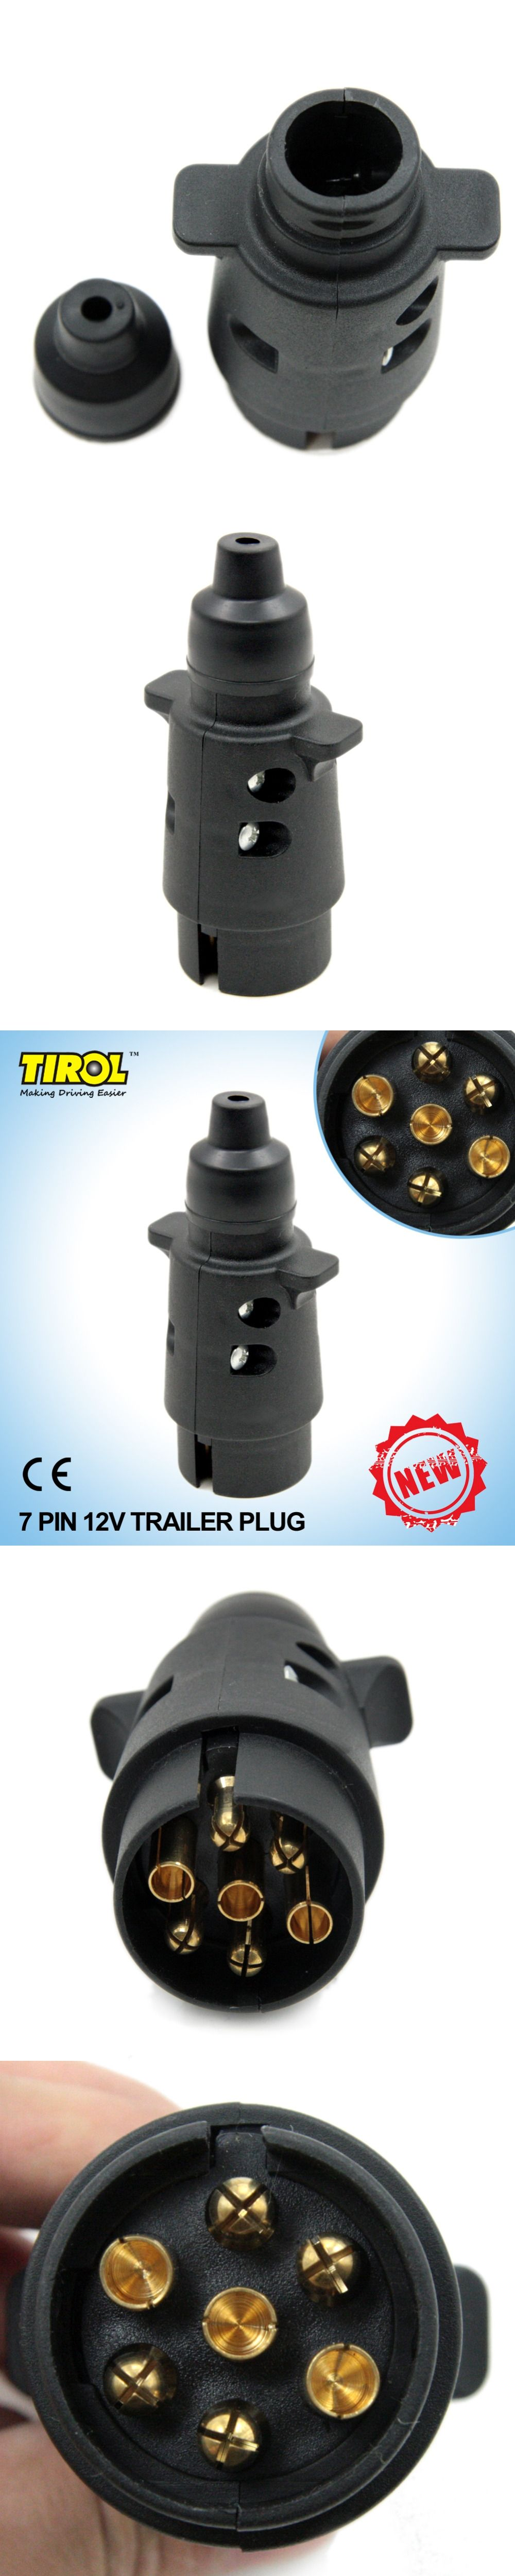 Tirol New 7 Pin Trailer Plug Black Frosted Materials Pole Connector Wiring